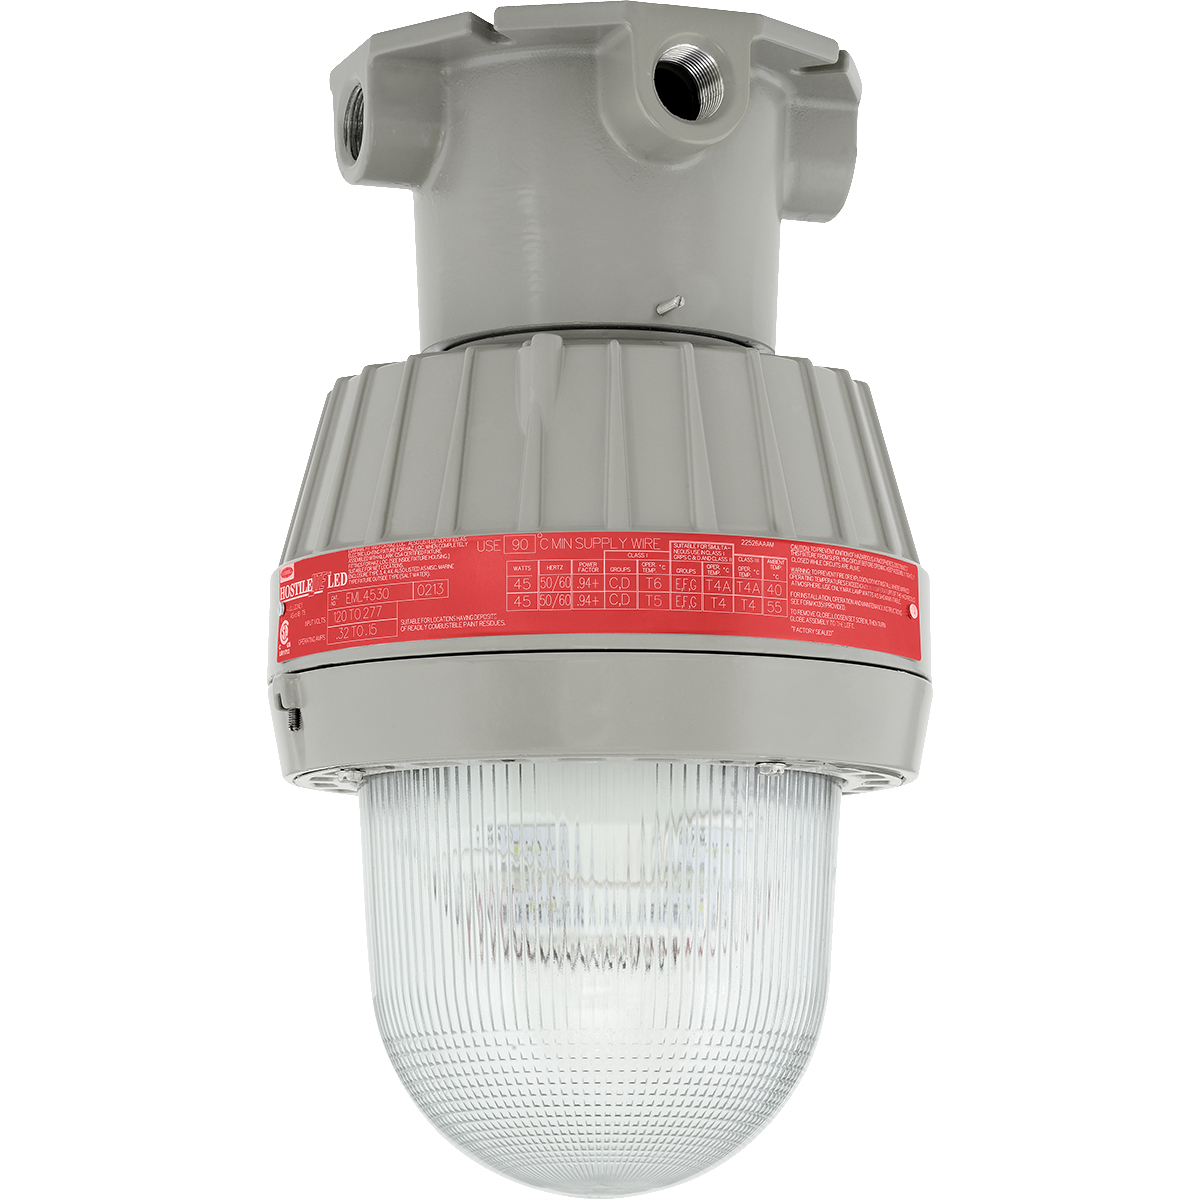 Hleml by hubbell industrial lighting